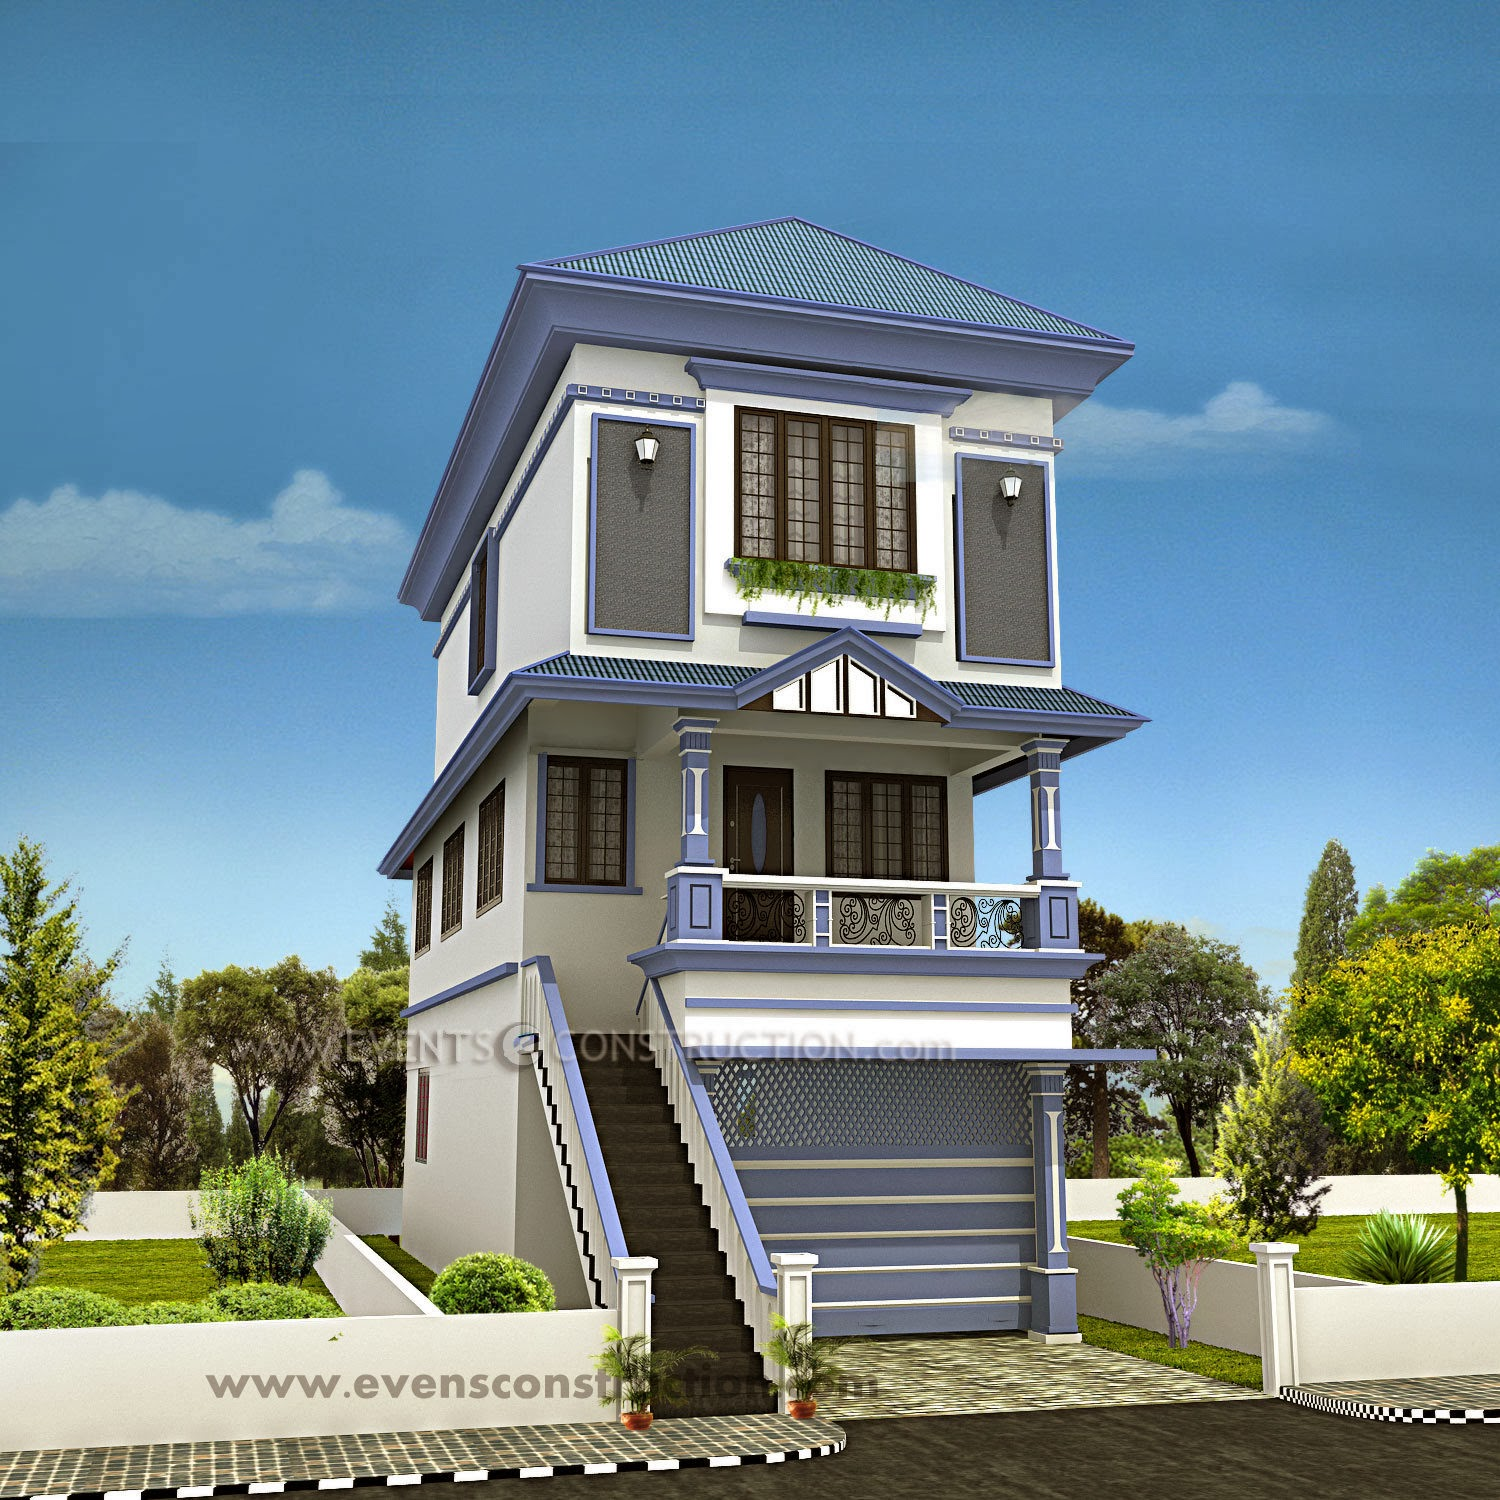 Evens Construction Pvt Ltd 2047 Square Feet Sloping Roof